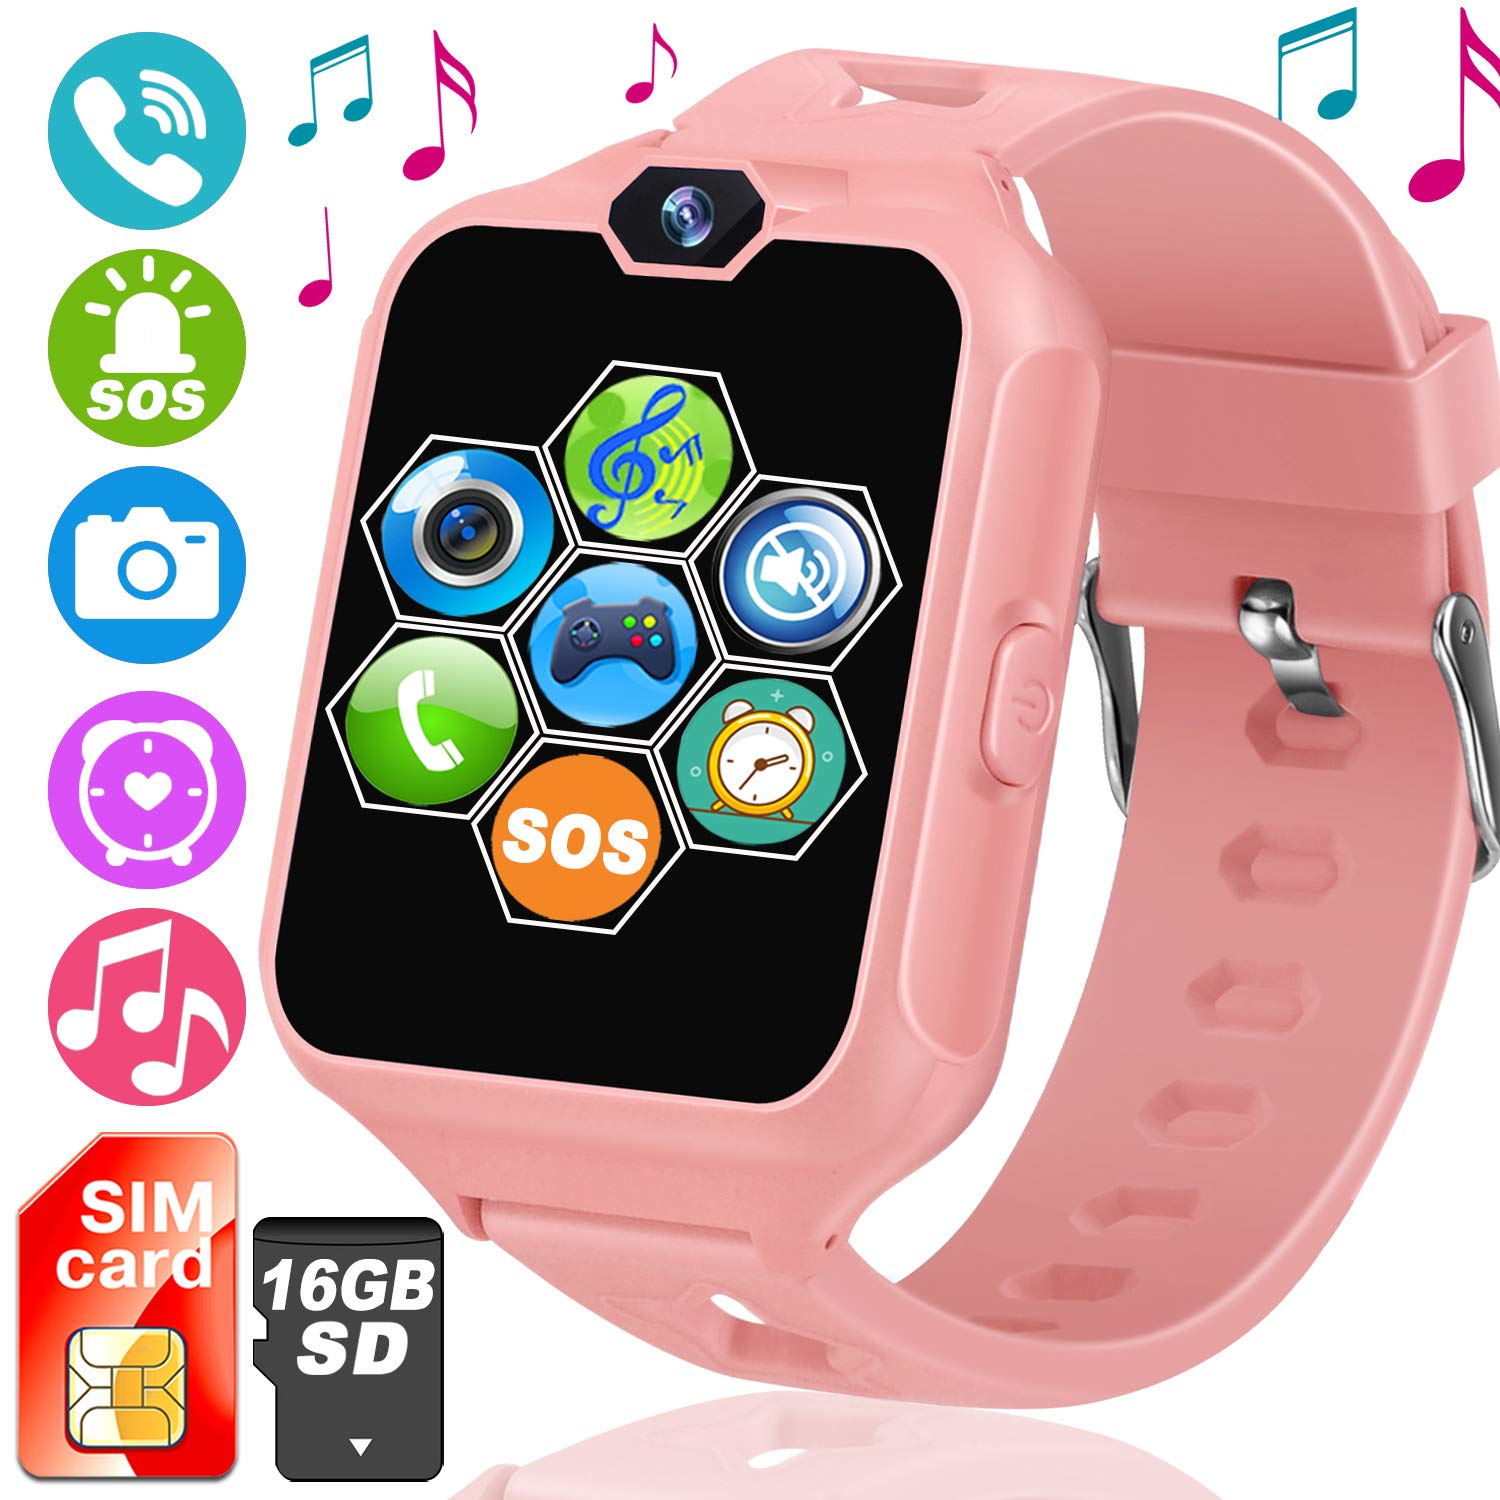 Kids Smartwatch [SIM Card and 16GB Micro SD Card Included], Smart Watch Phone for Children with Touch Screen SOS Camera Games Music Player Alarm Clock ...